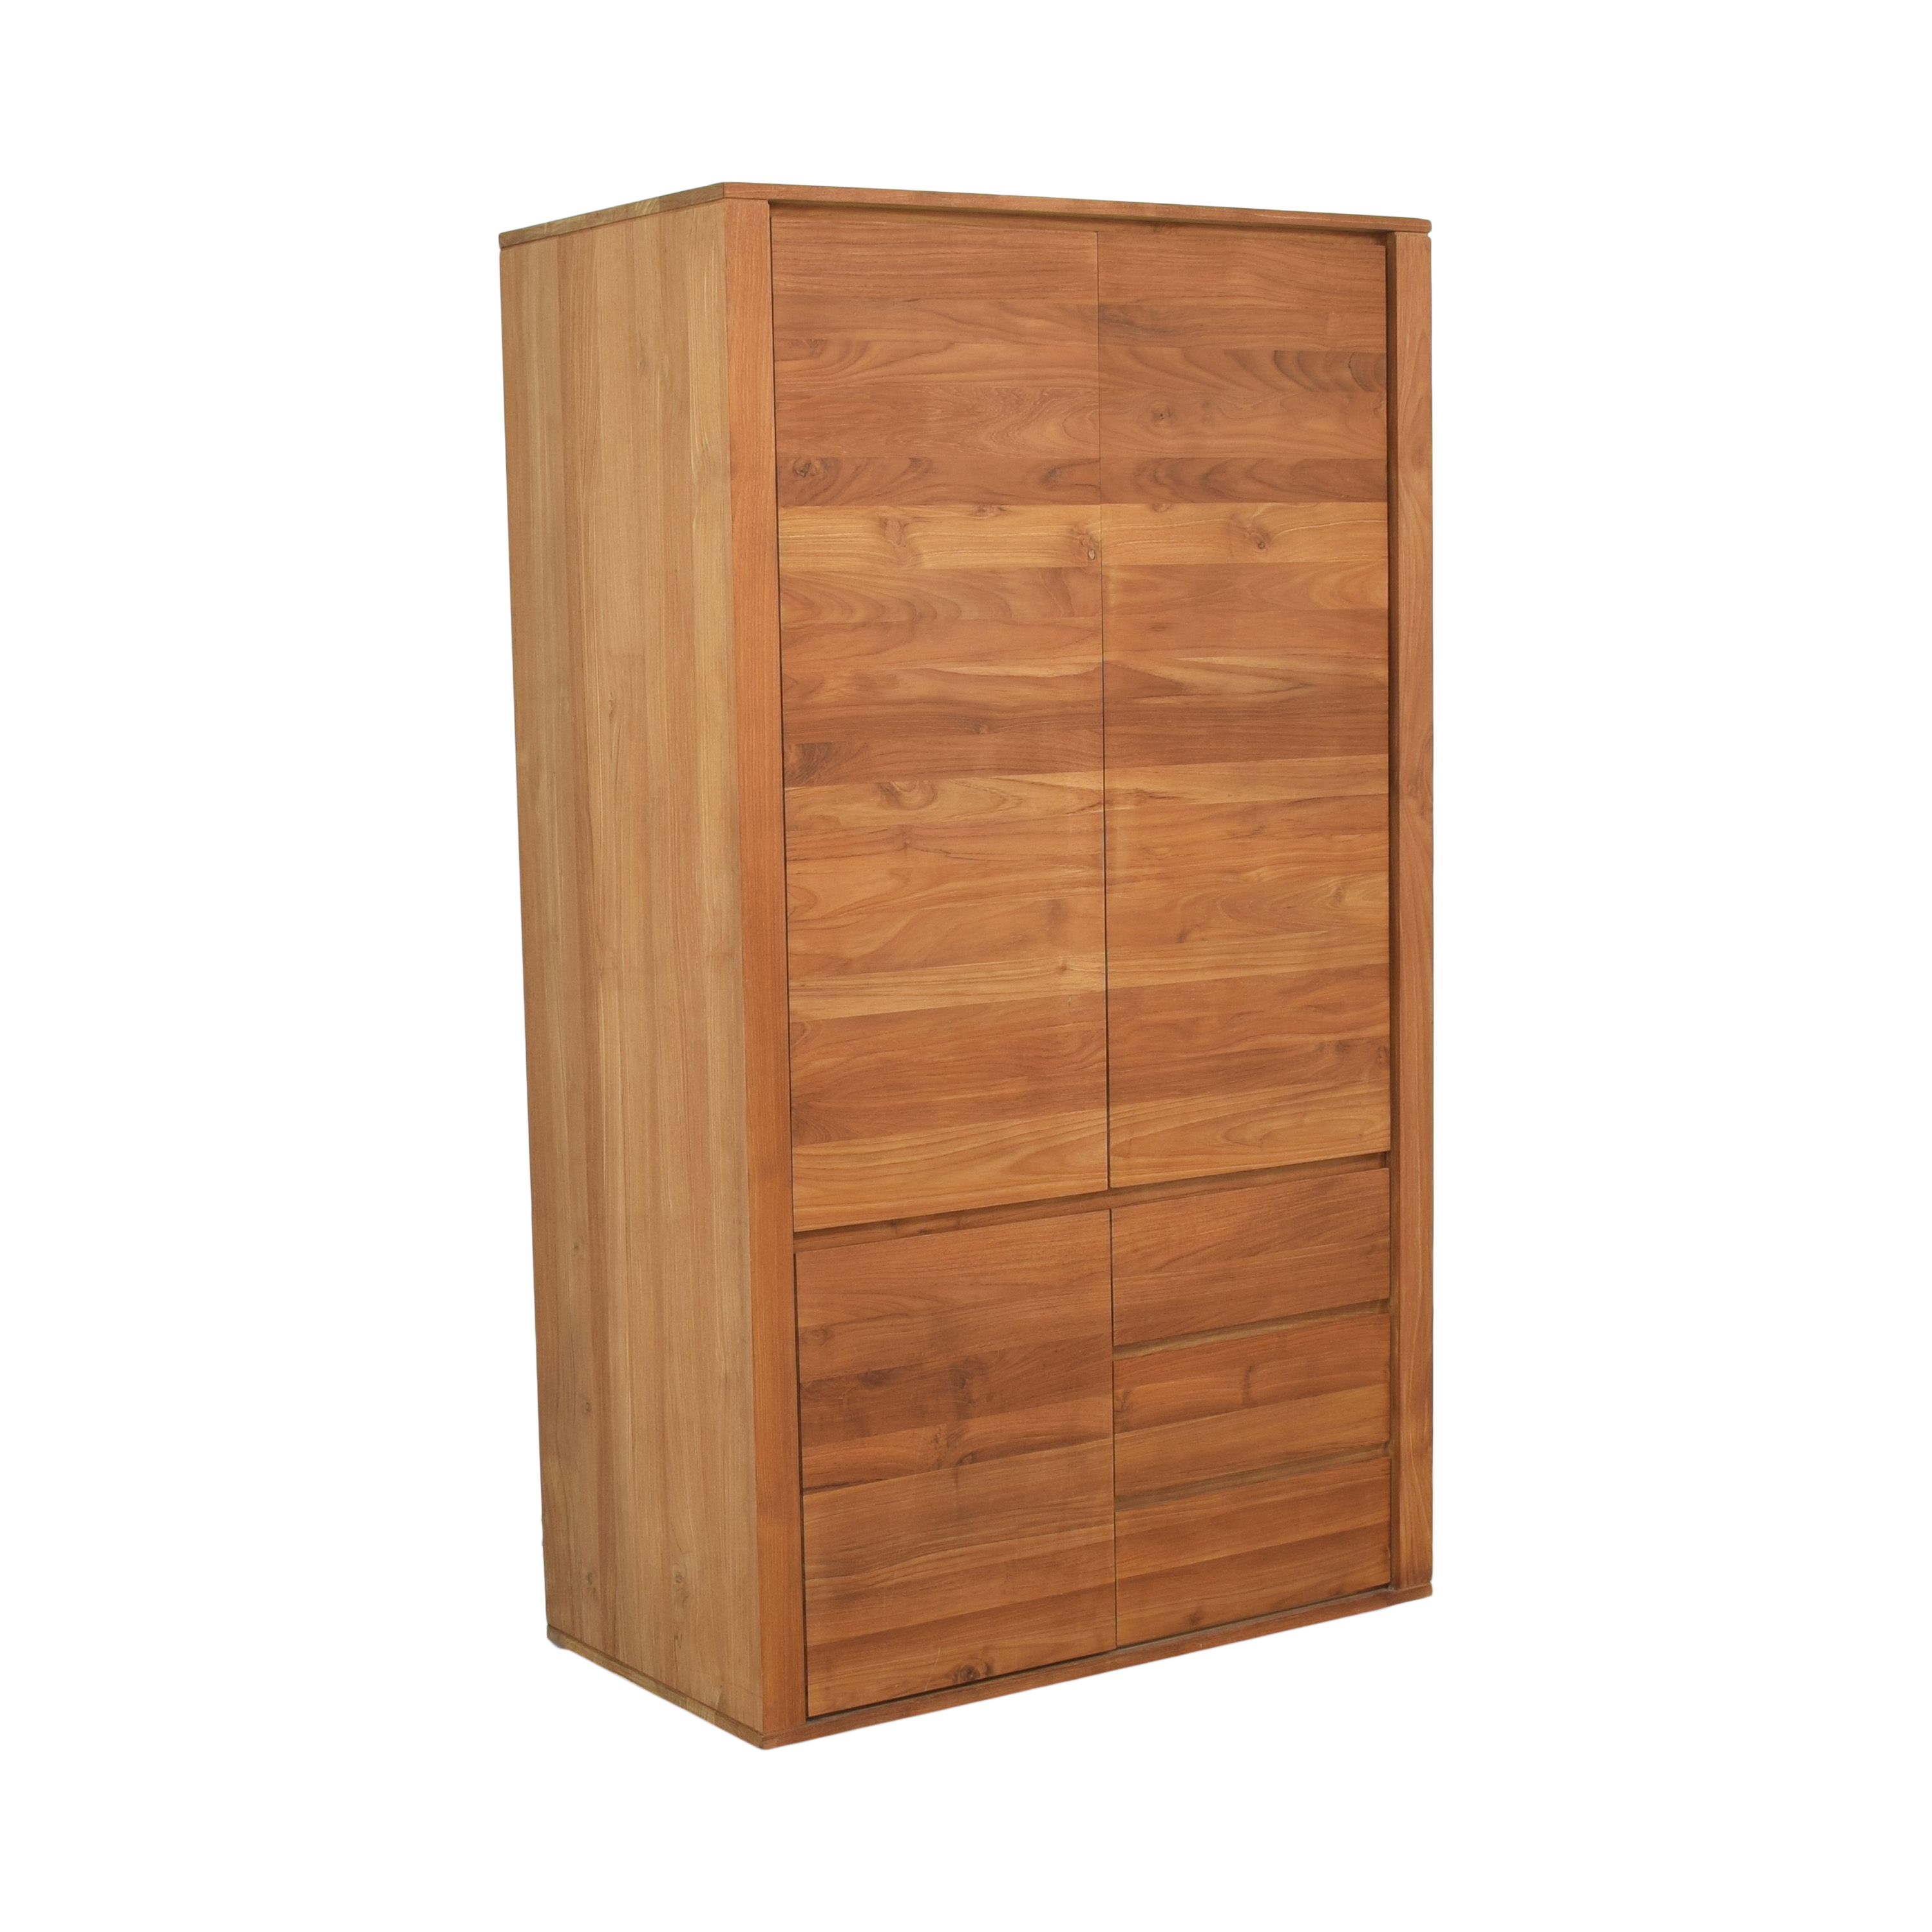 Crate & Barrel Crate & Barrel Margate Armoire for sale